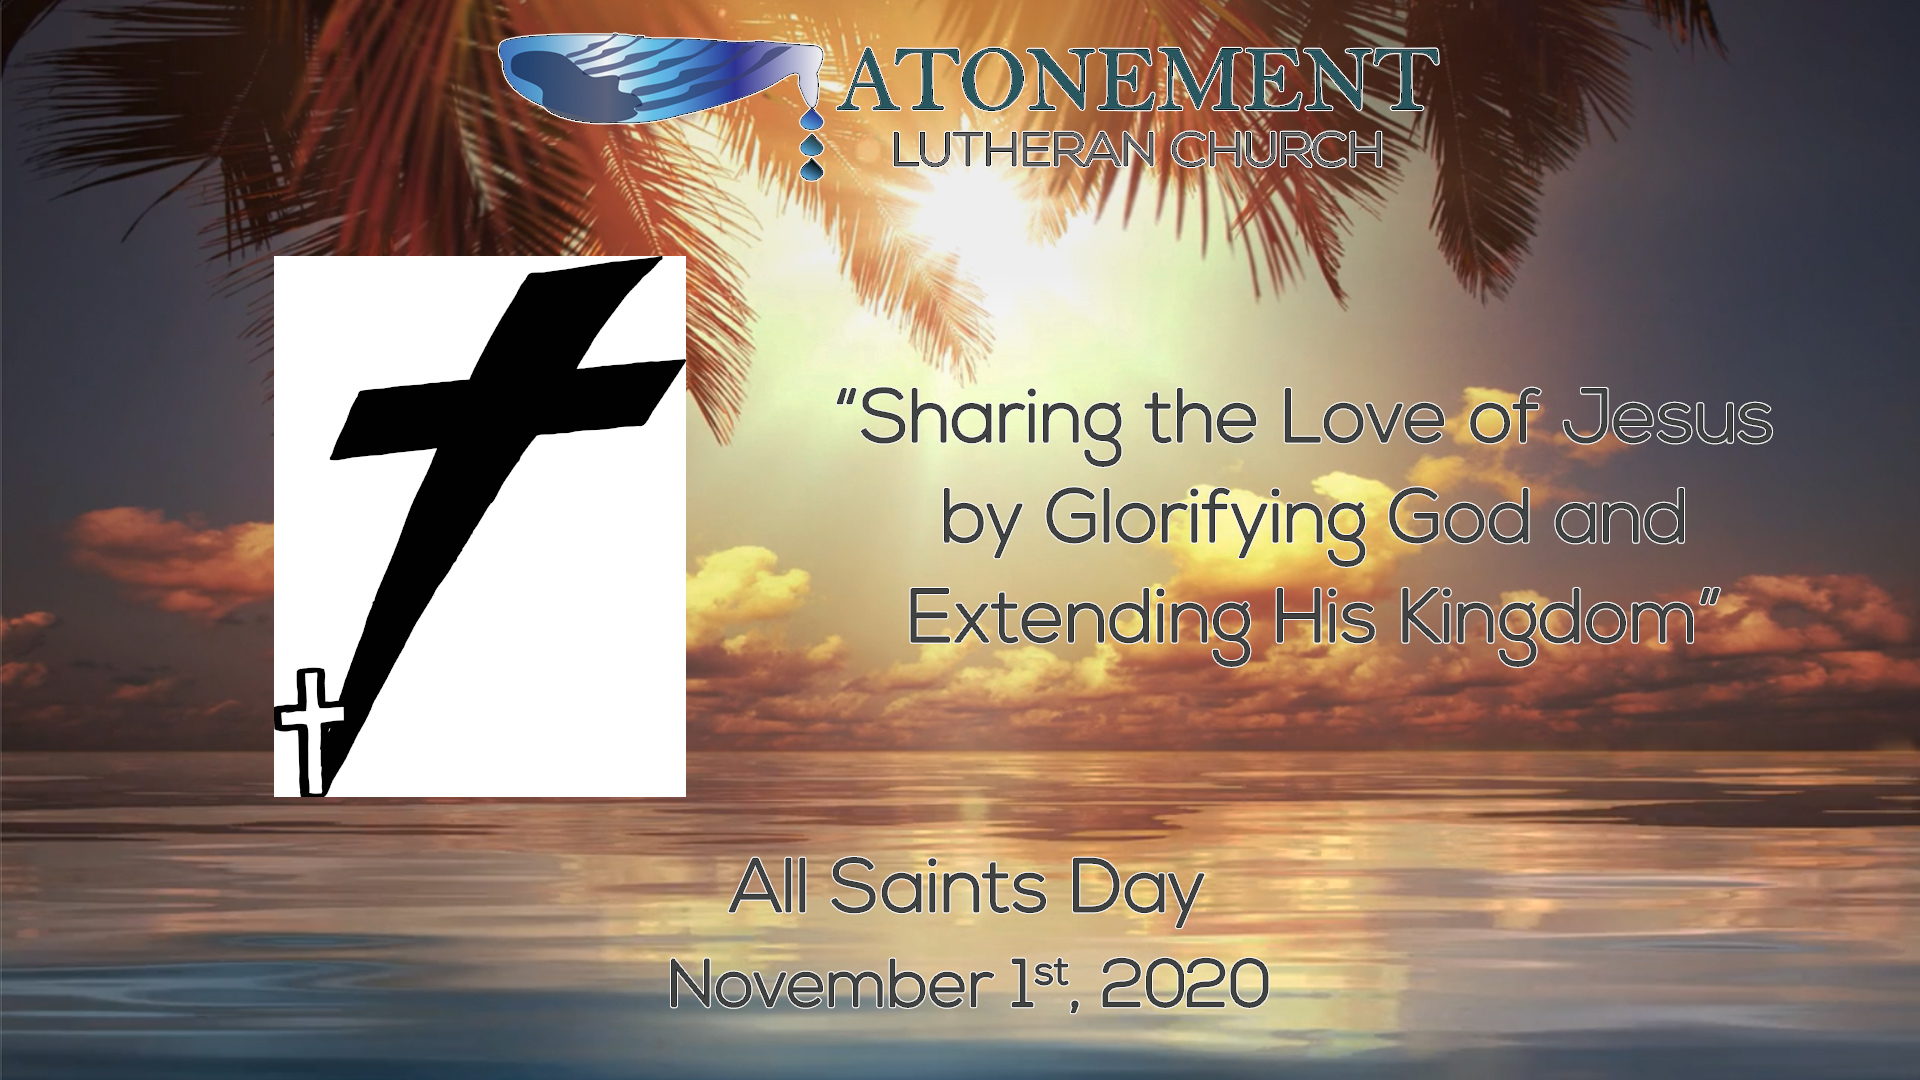 Nov 1st 2020 All Saints Day